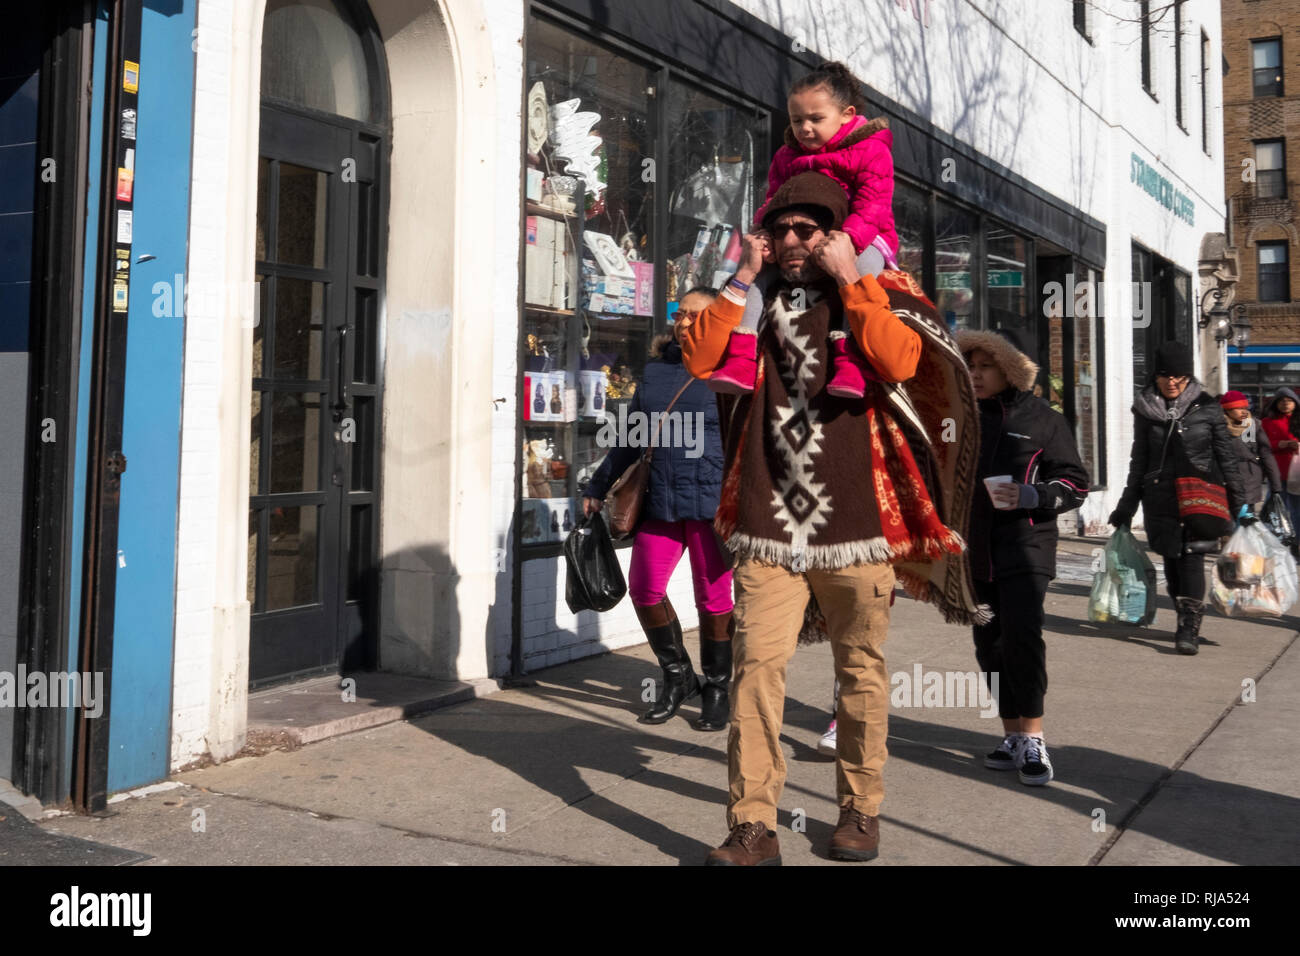 A busy street scene on 37th Avenue in Jackson Heights featuring a father carrying his daughter on his shoulders. In Queens, New York City. - Stock Image